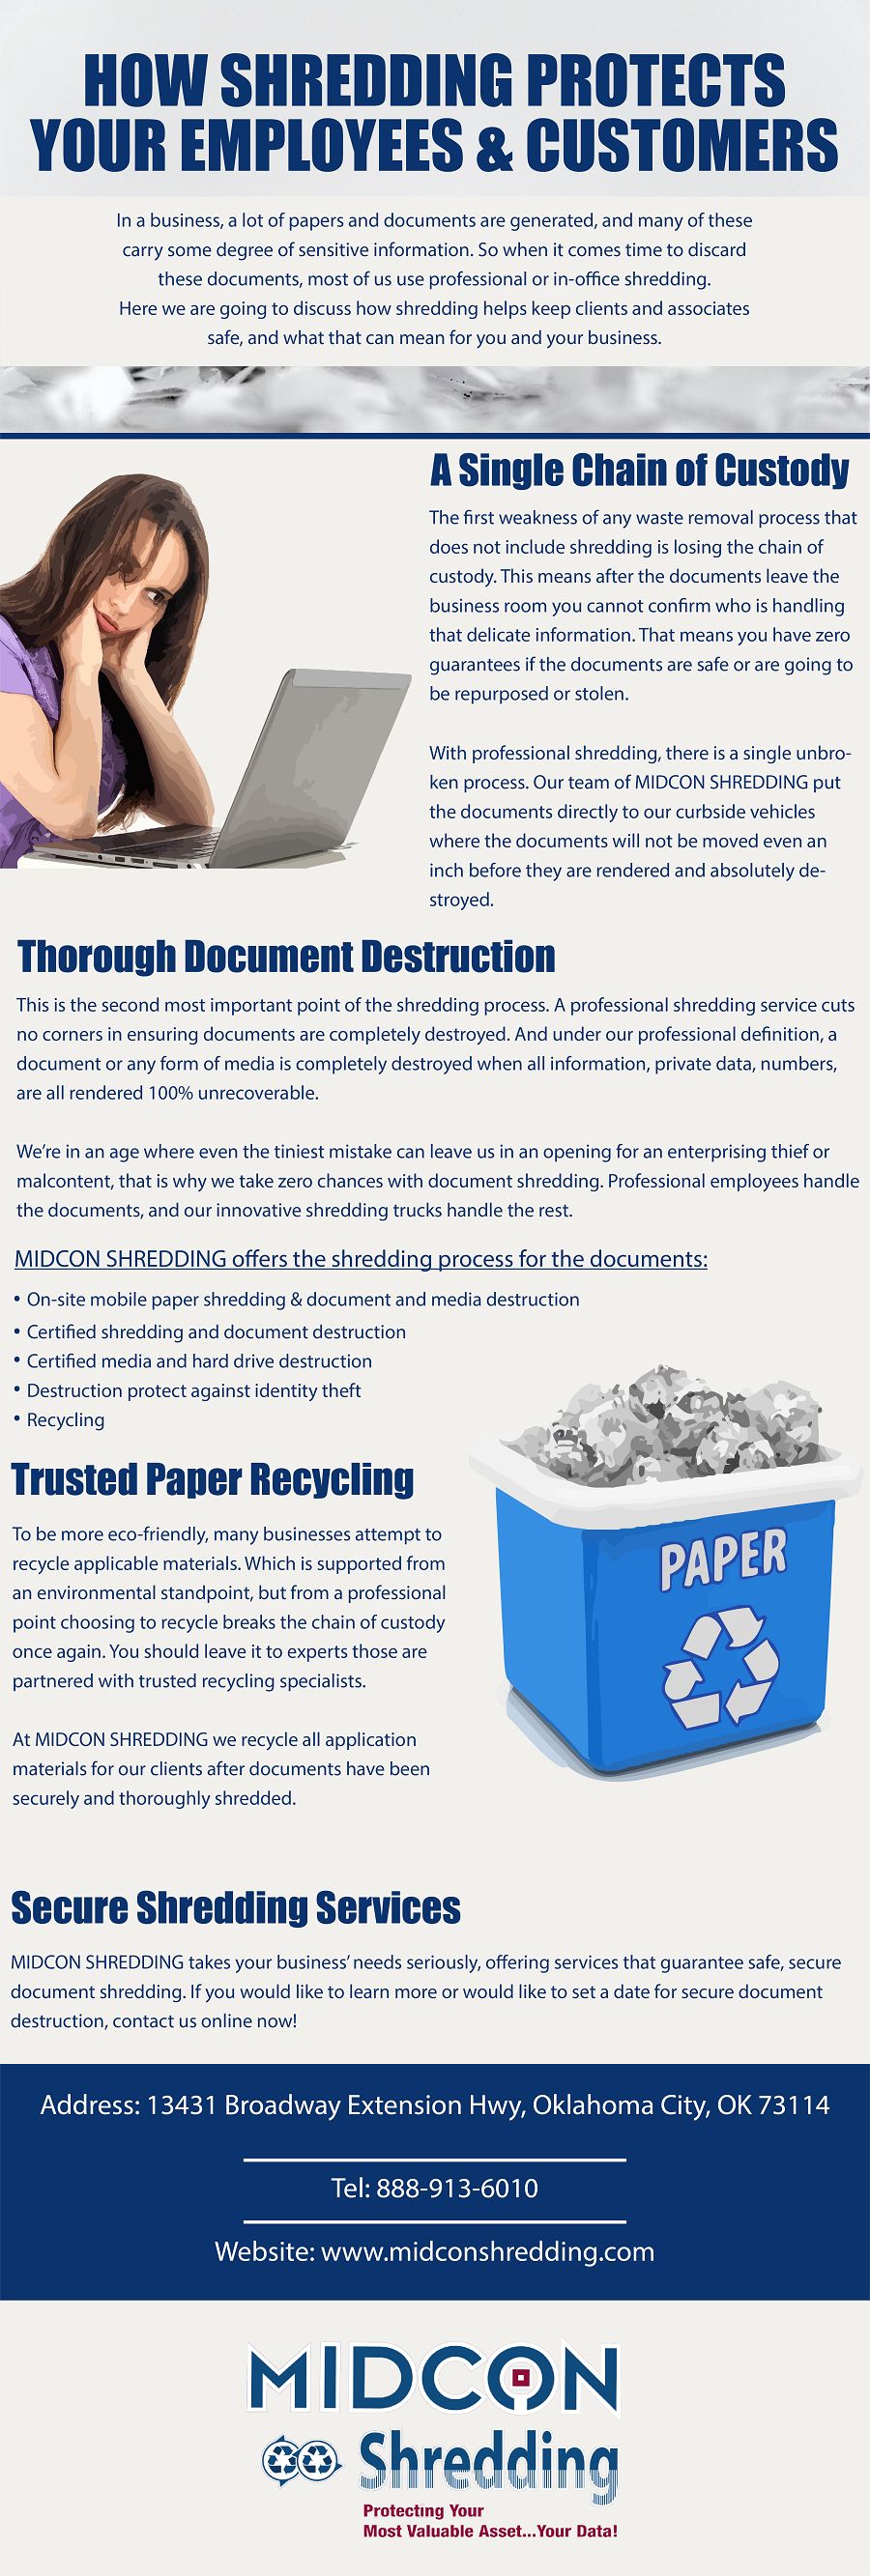 How Shredding Protects Your Employees & Customers.png